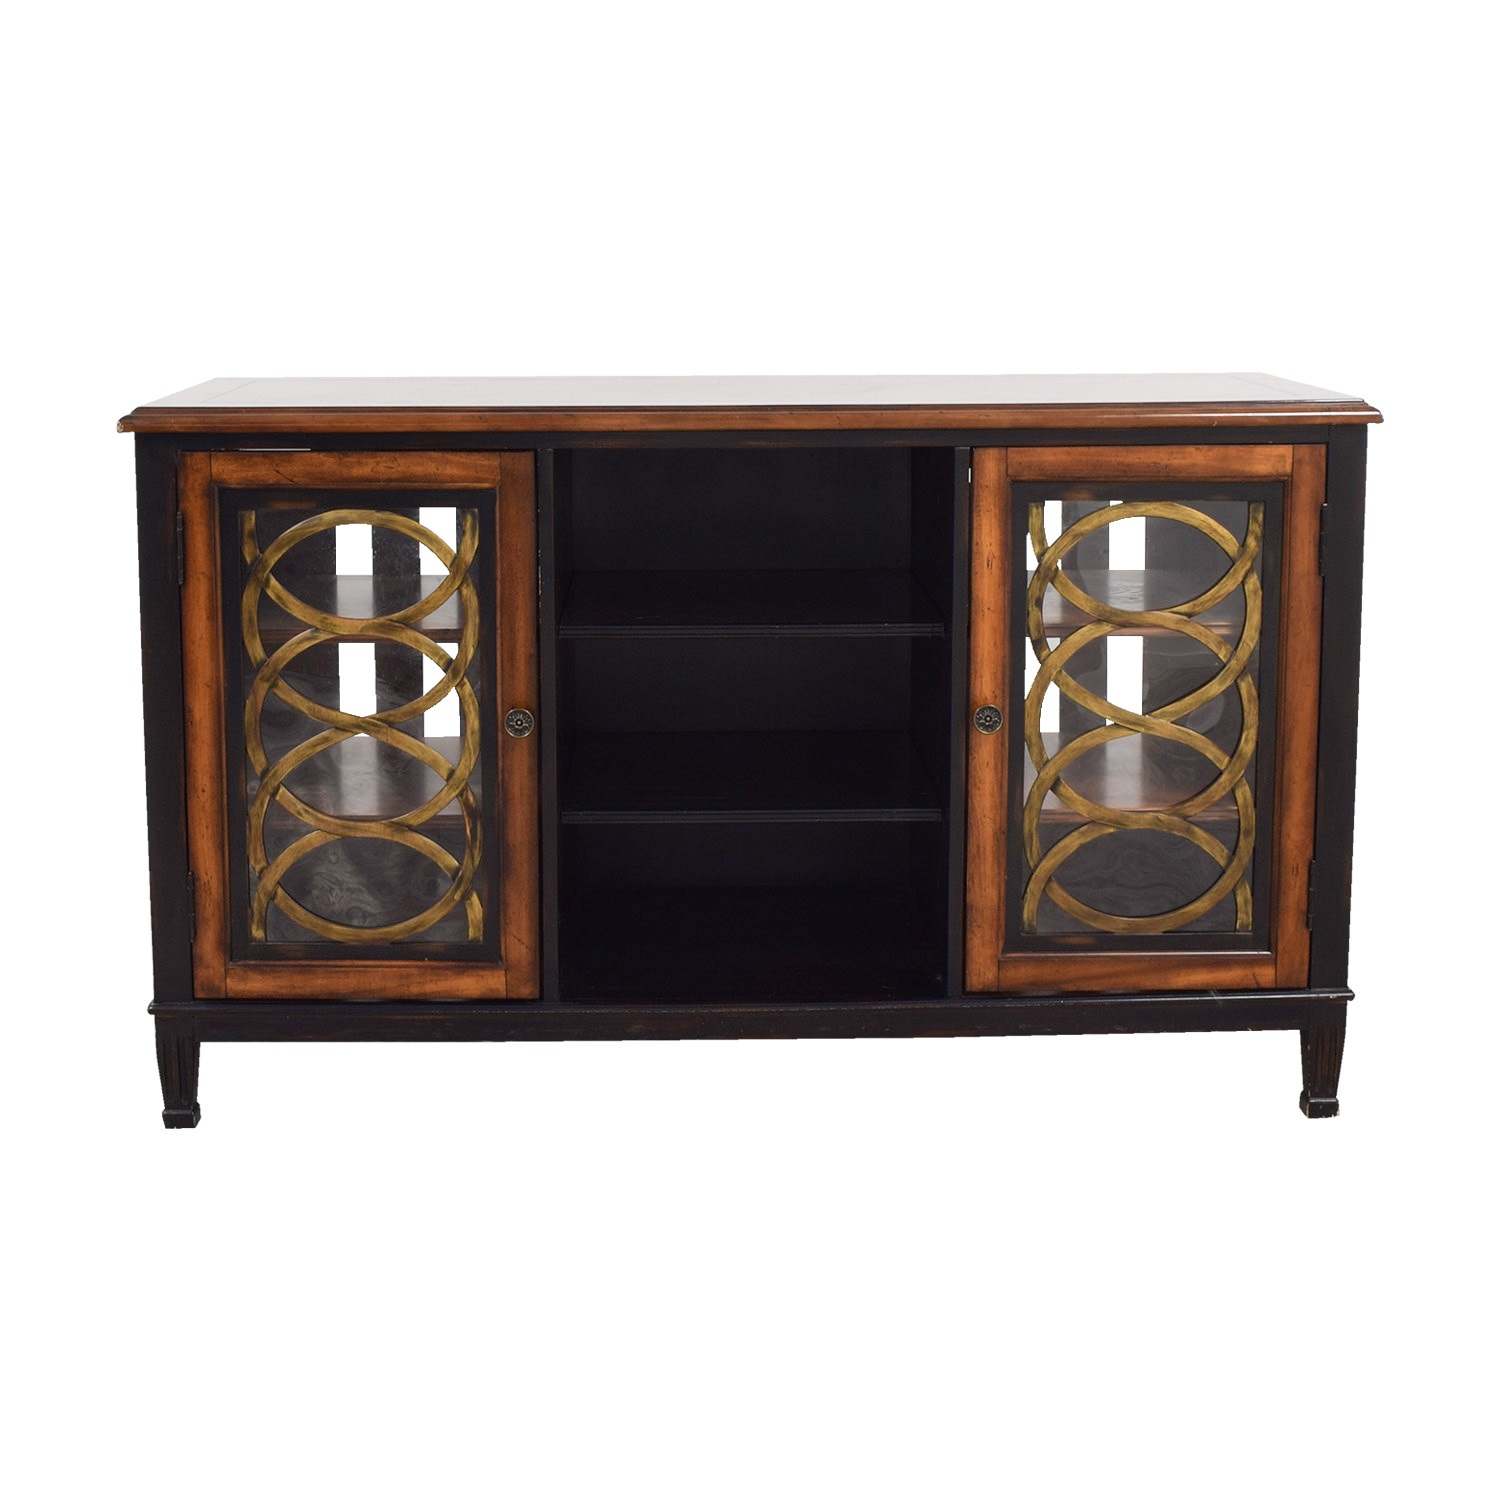 shop Horchow Horchow TV Media Console online